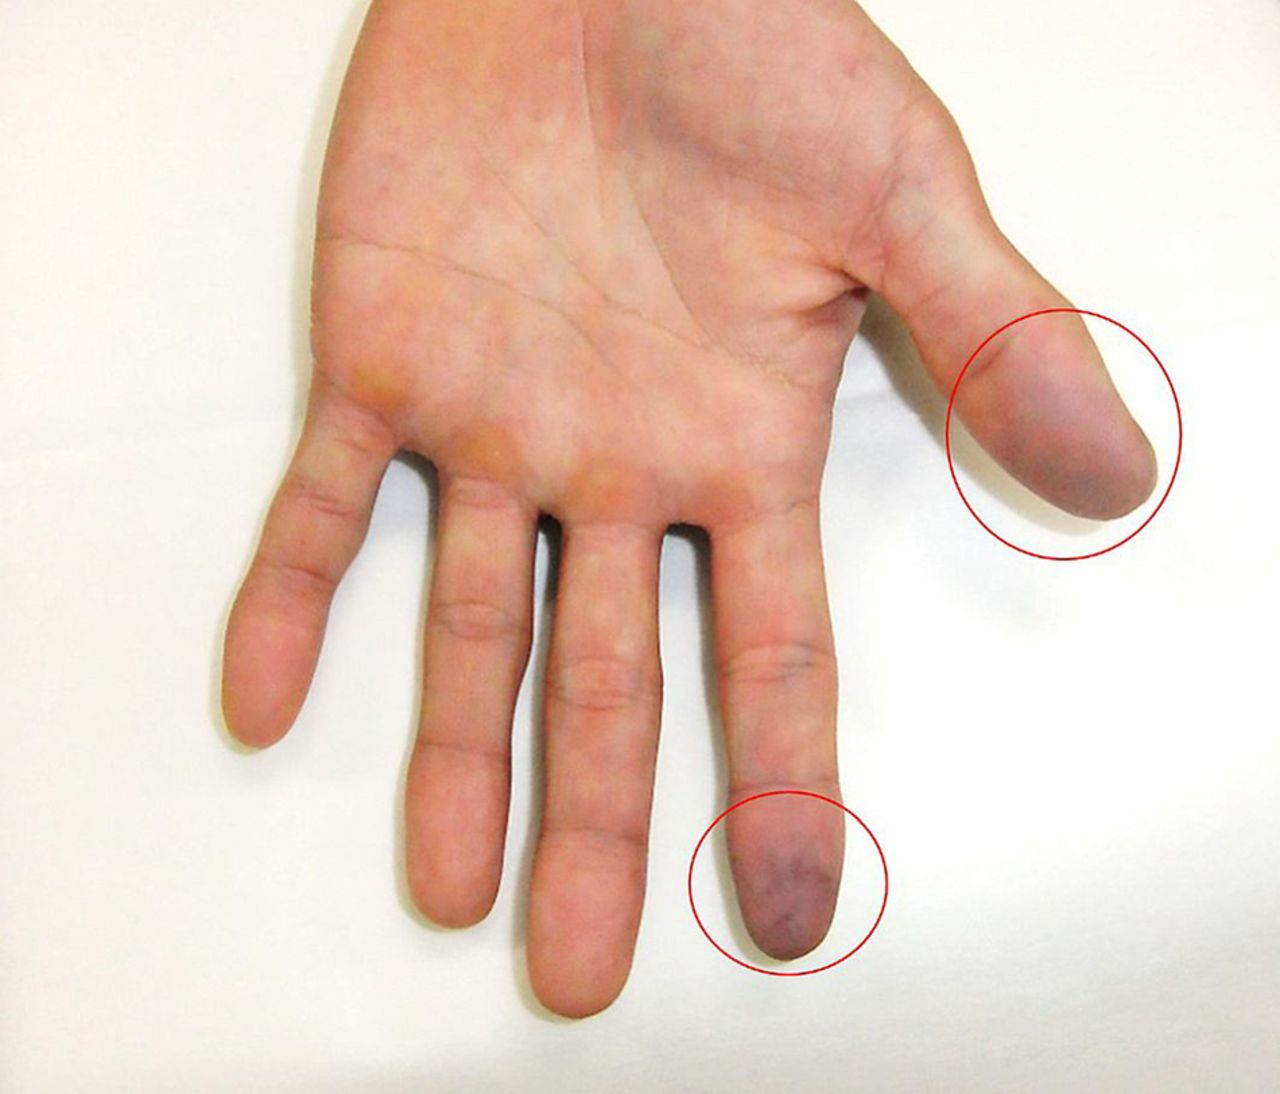 Acute Idiopathic Blue Fingers A Young Man With Achenbach S Syndrome